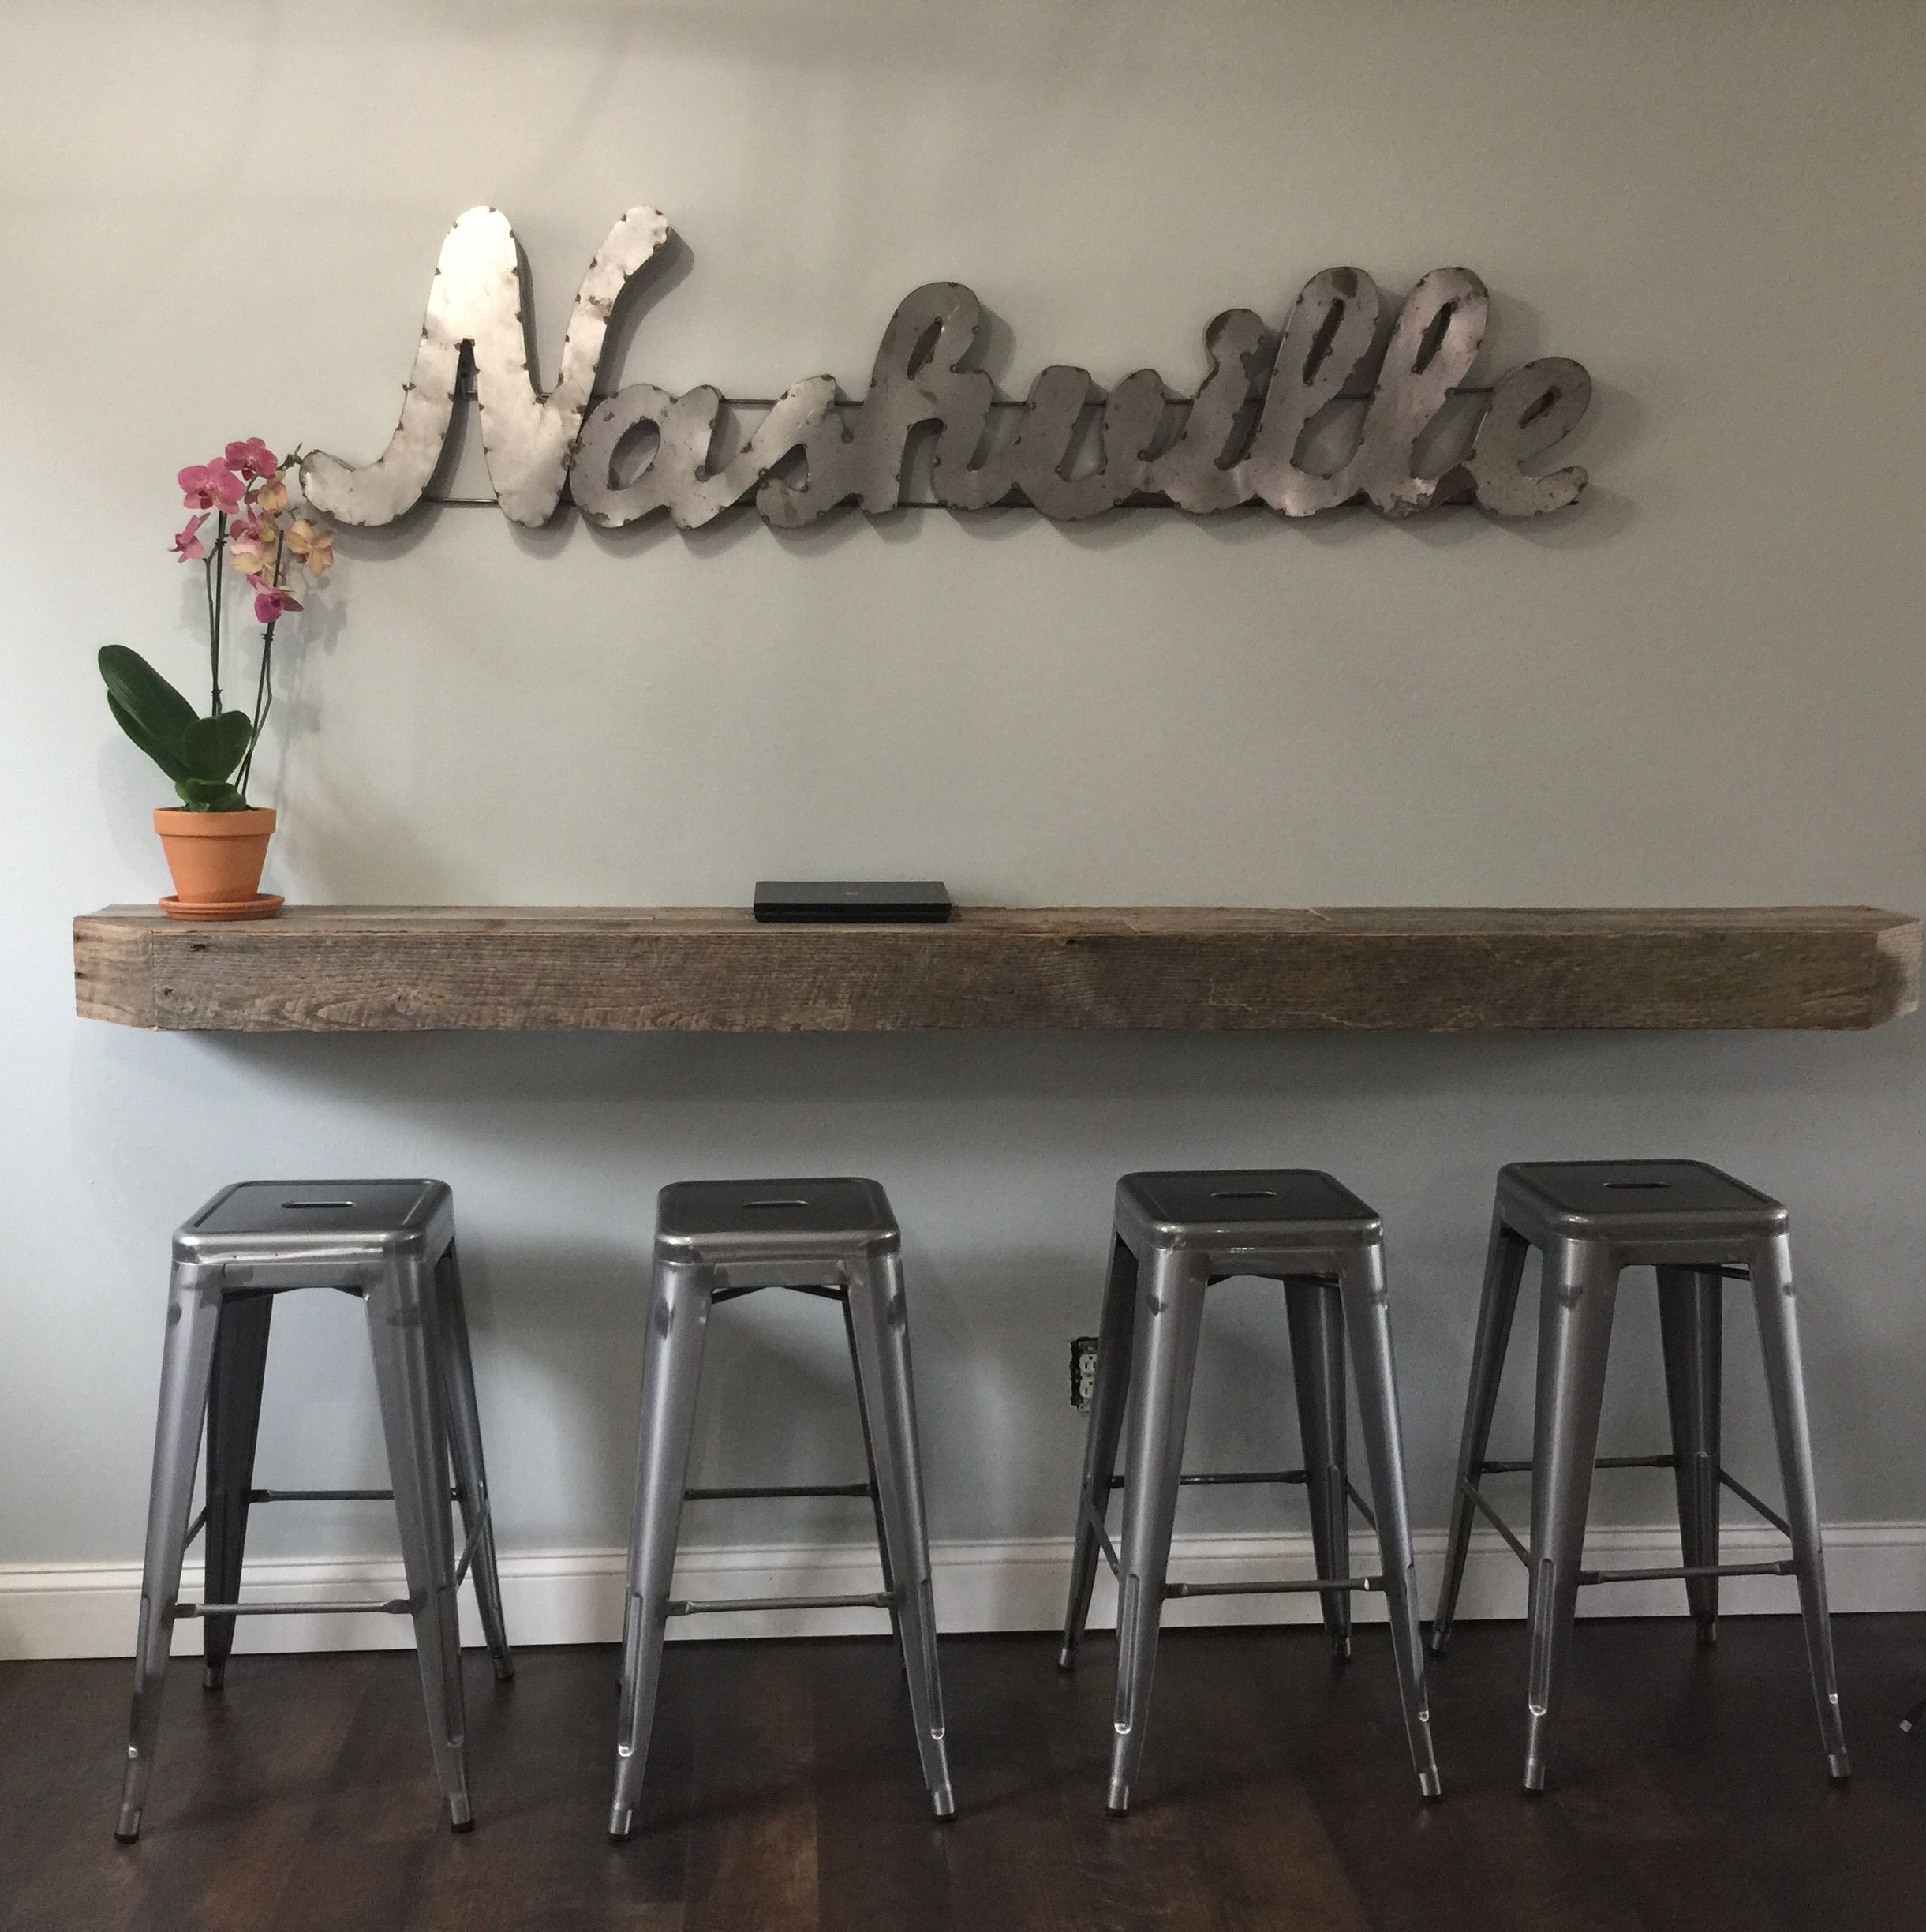 Reclaimed Barnwood From Good Wood Nashville Carlisle Stools From Target We Created This Floating Shelves Living Room Floating Shelves Bathroom Bar Furniture